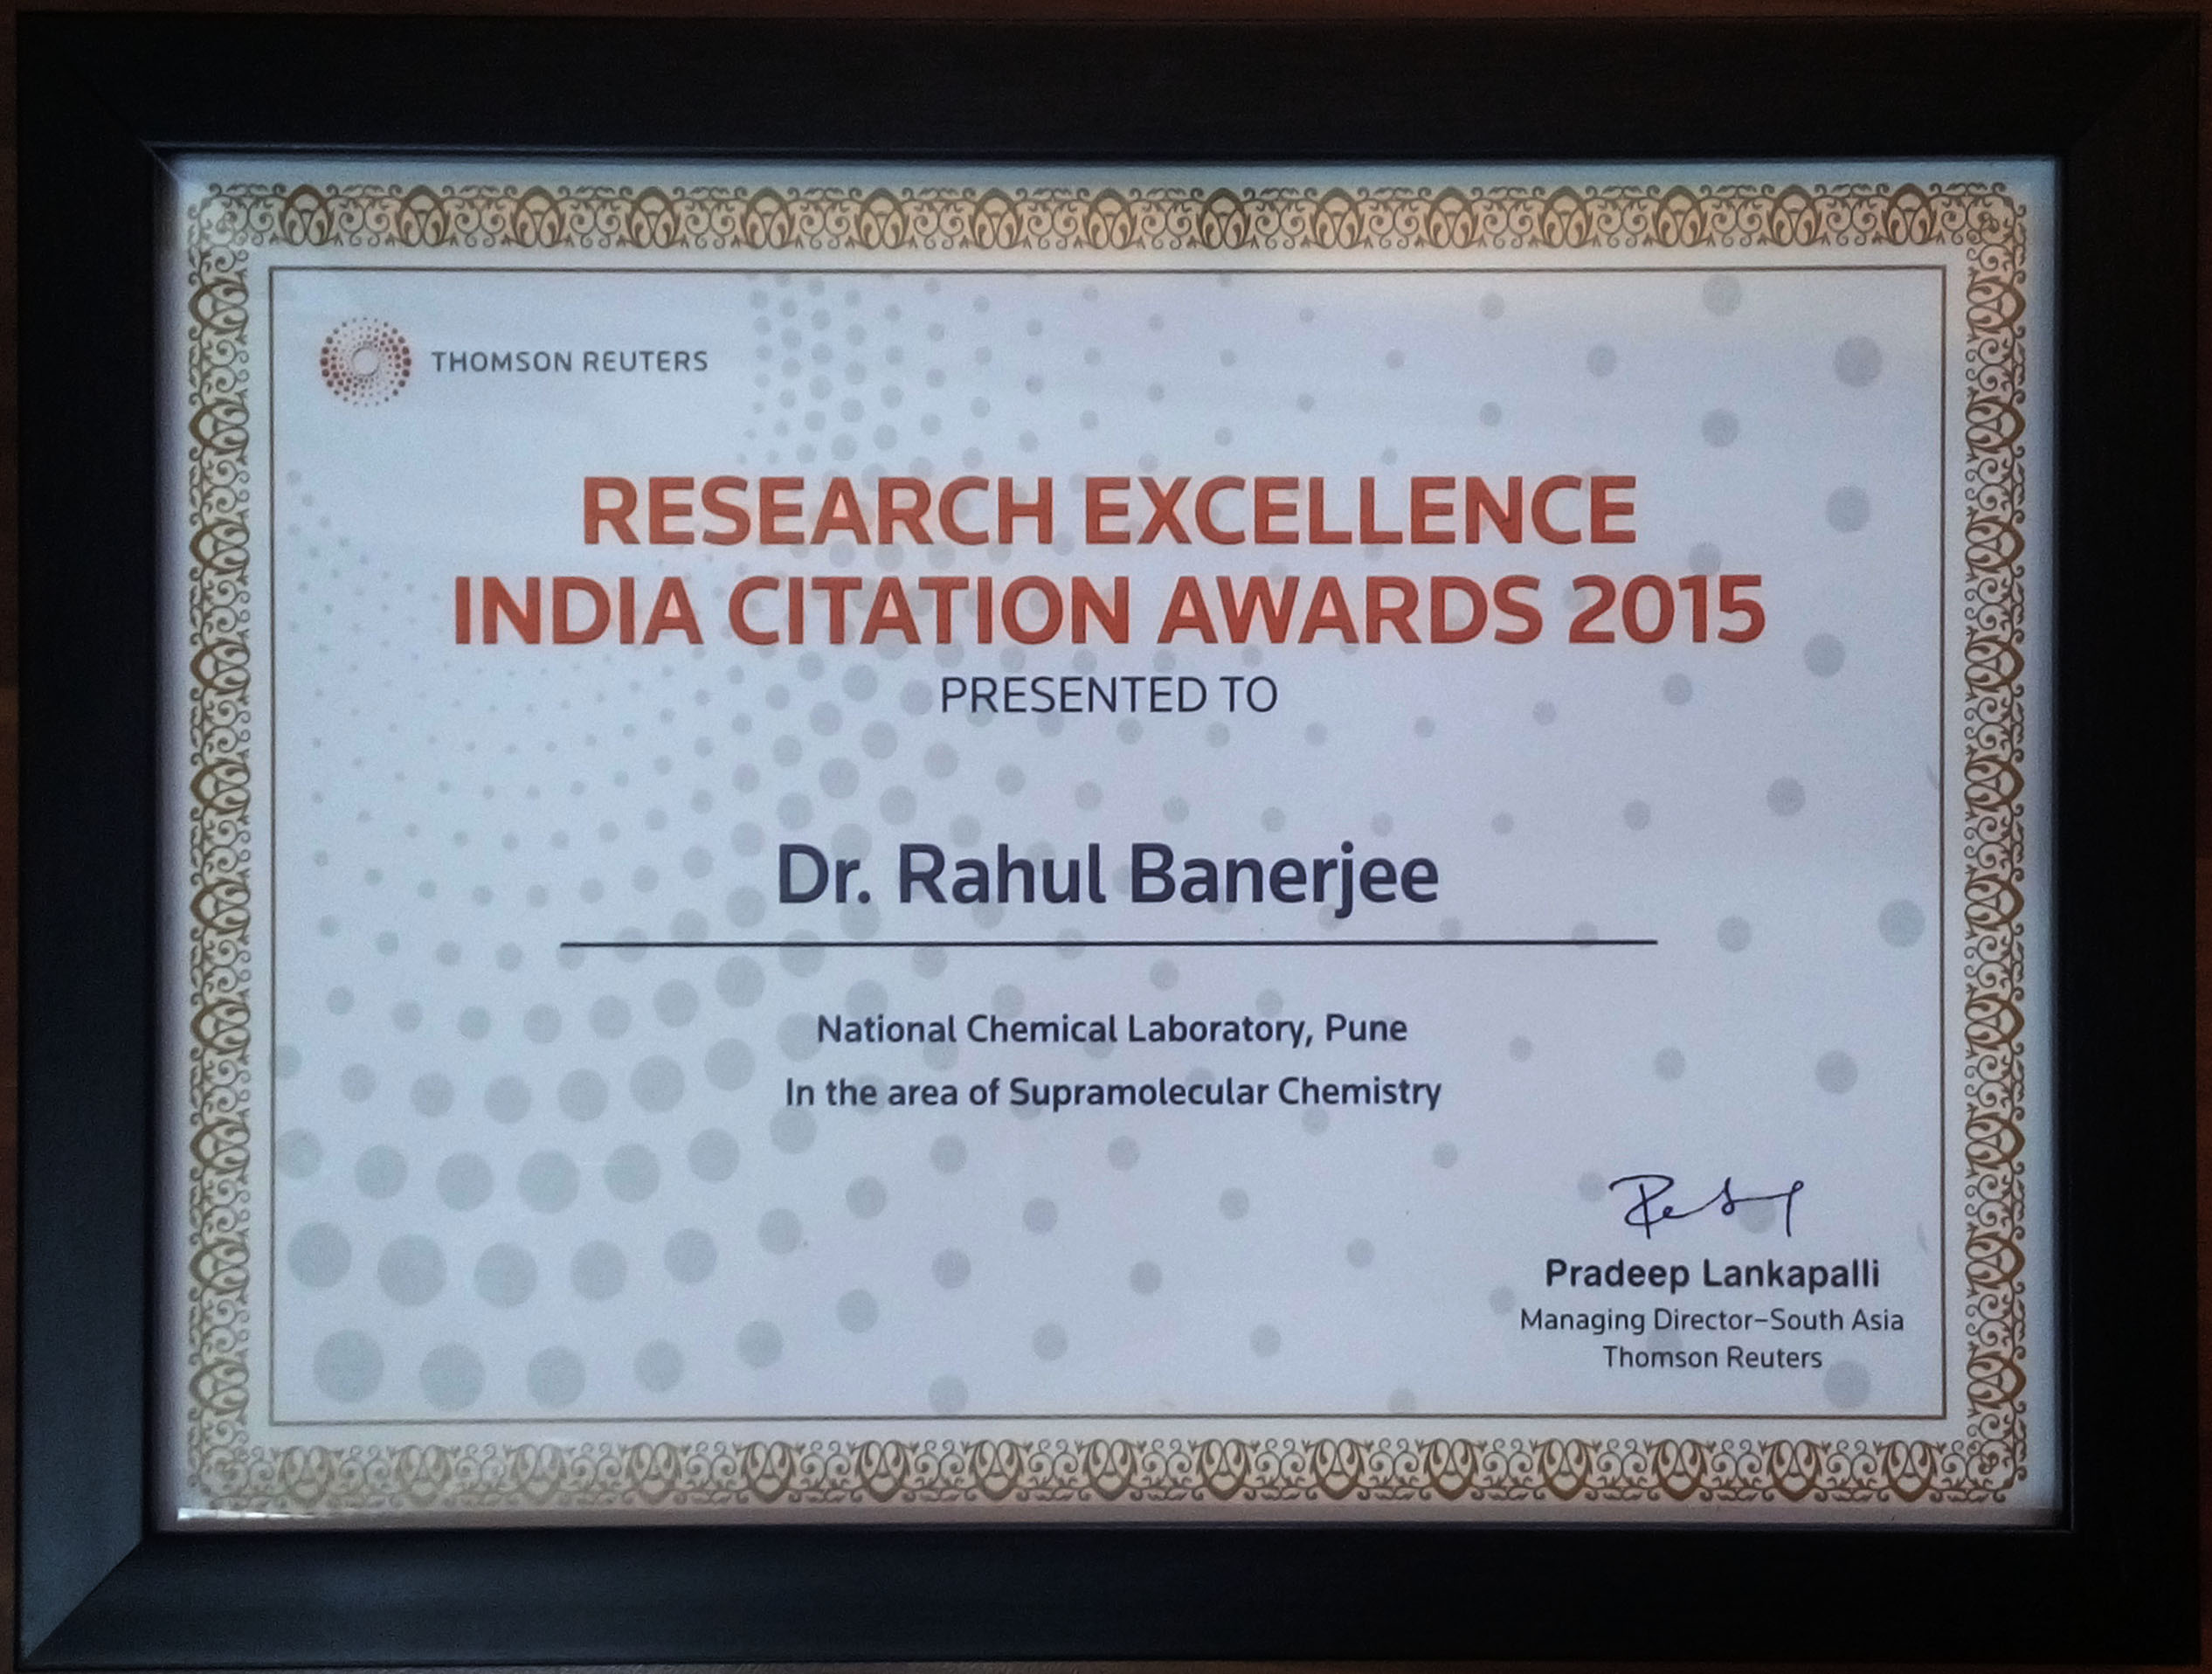 Professor Banerjee's Award